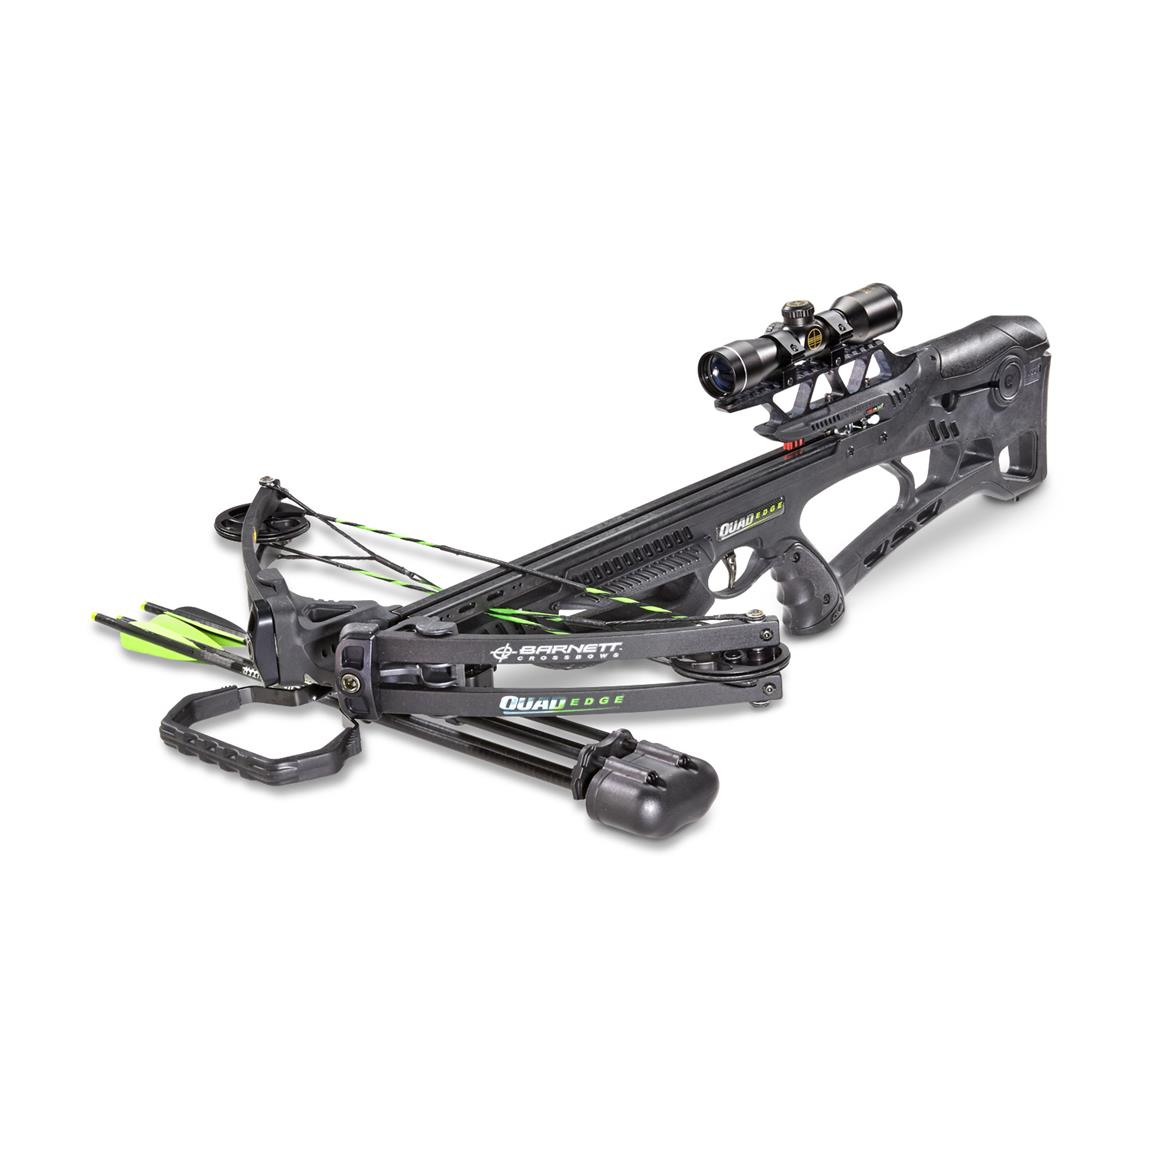 Barnett Quad Edge Crossbow